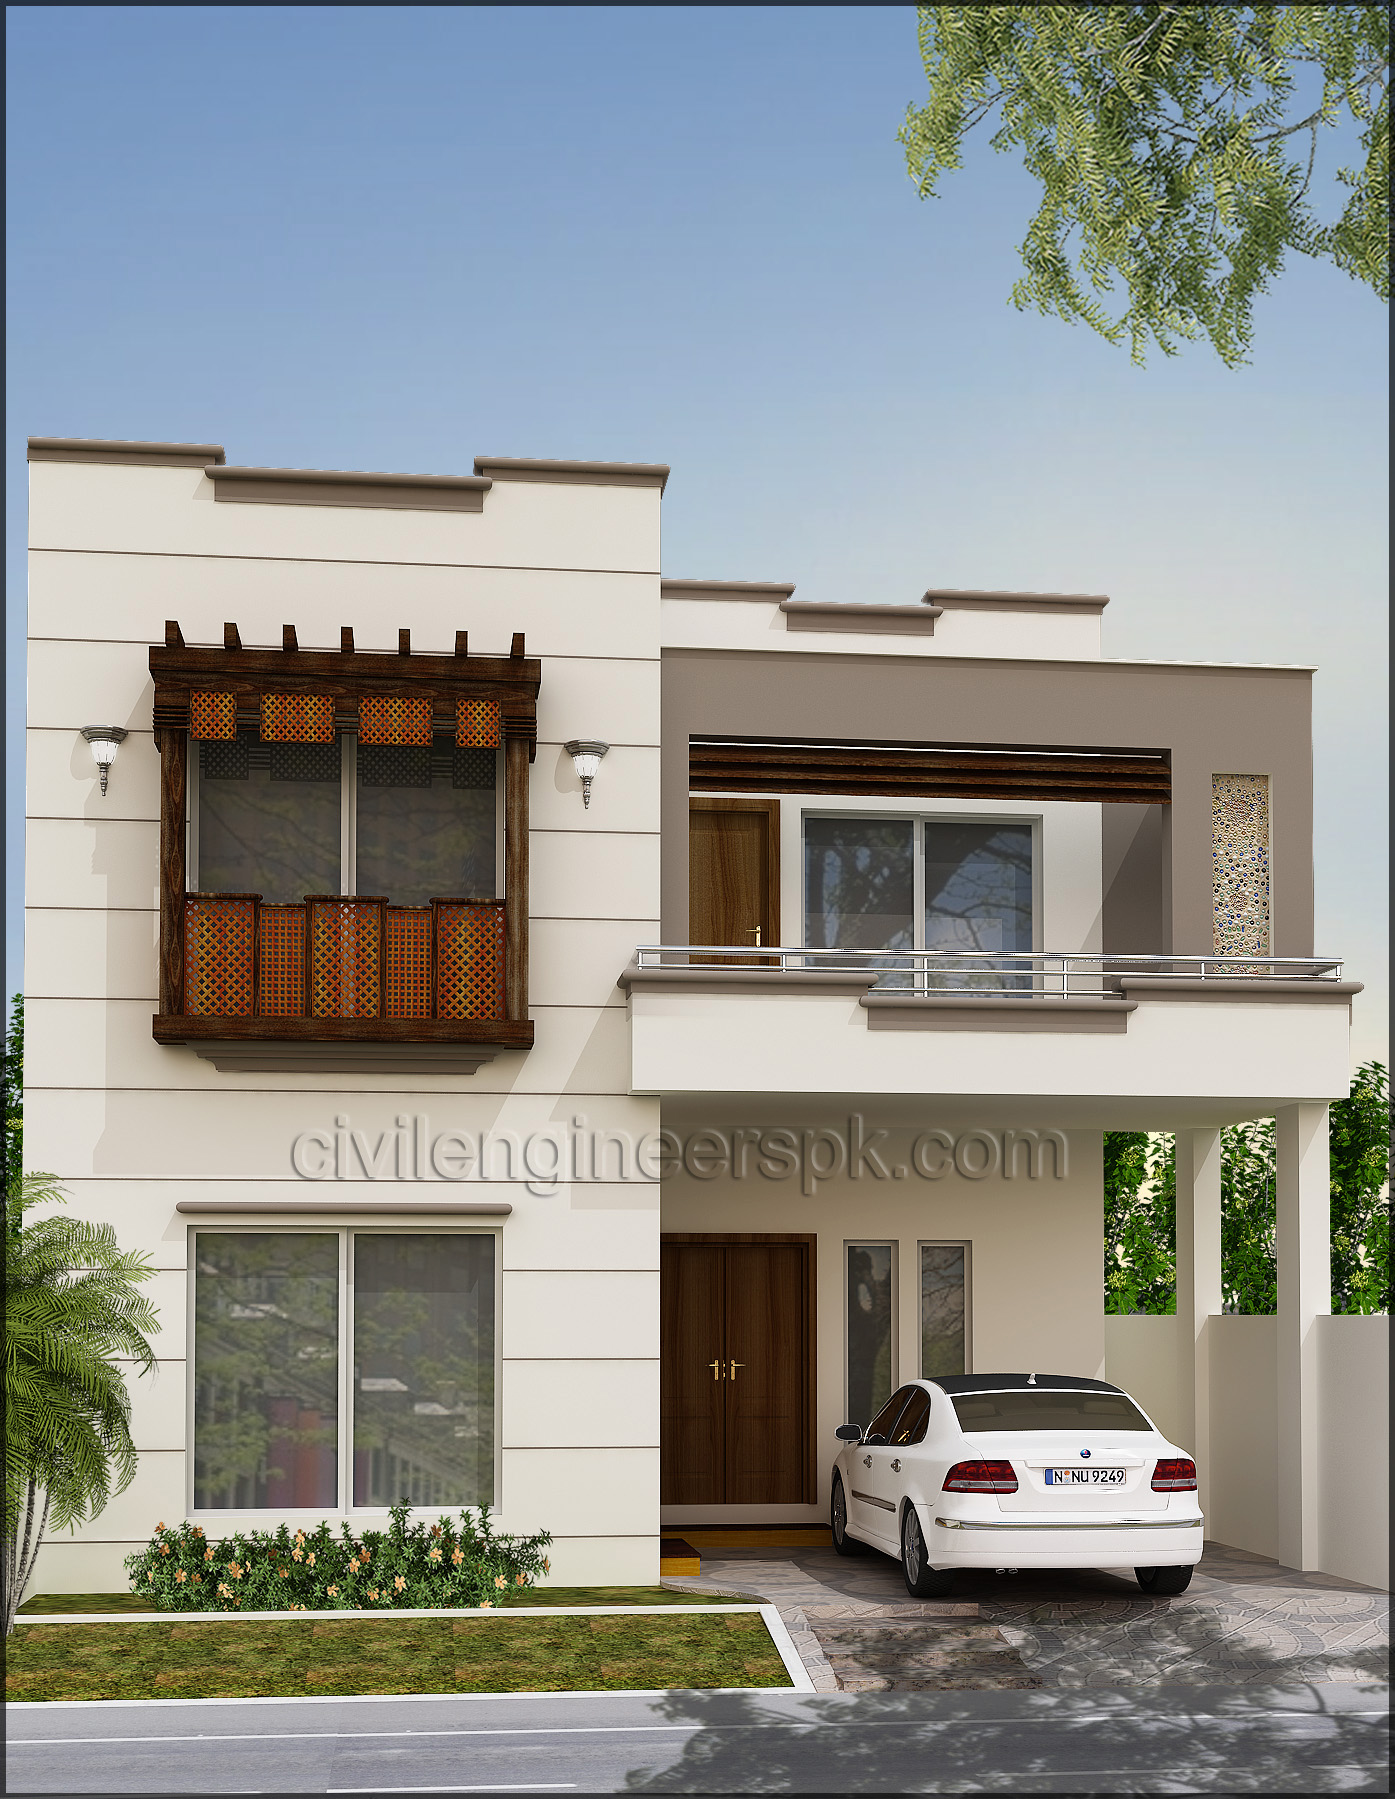 Front Elevation Of House In Punjab : Front views civil engineers pk